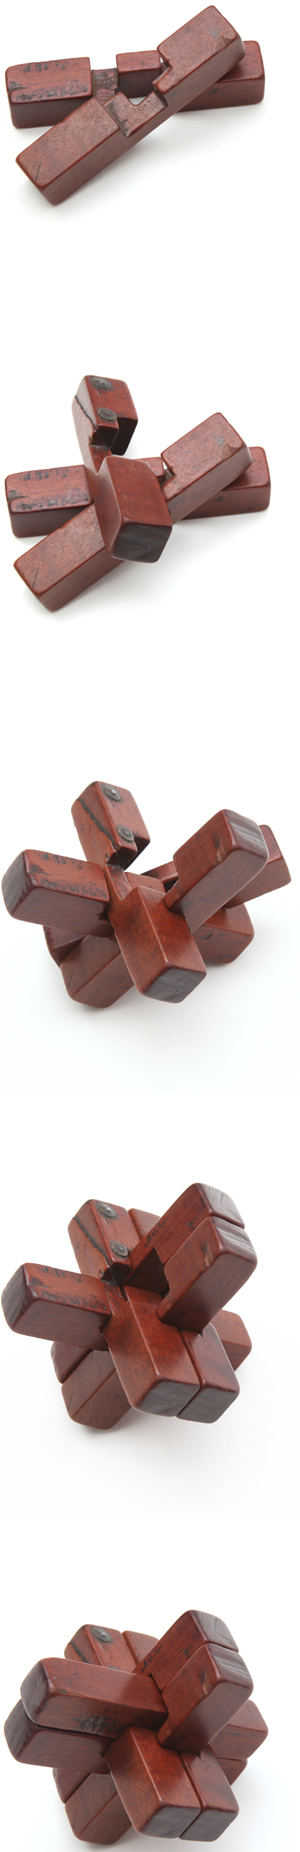 interlocking-burr-puzzle